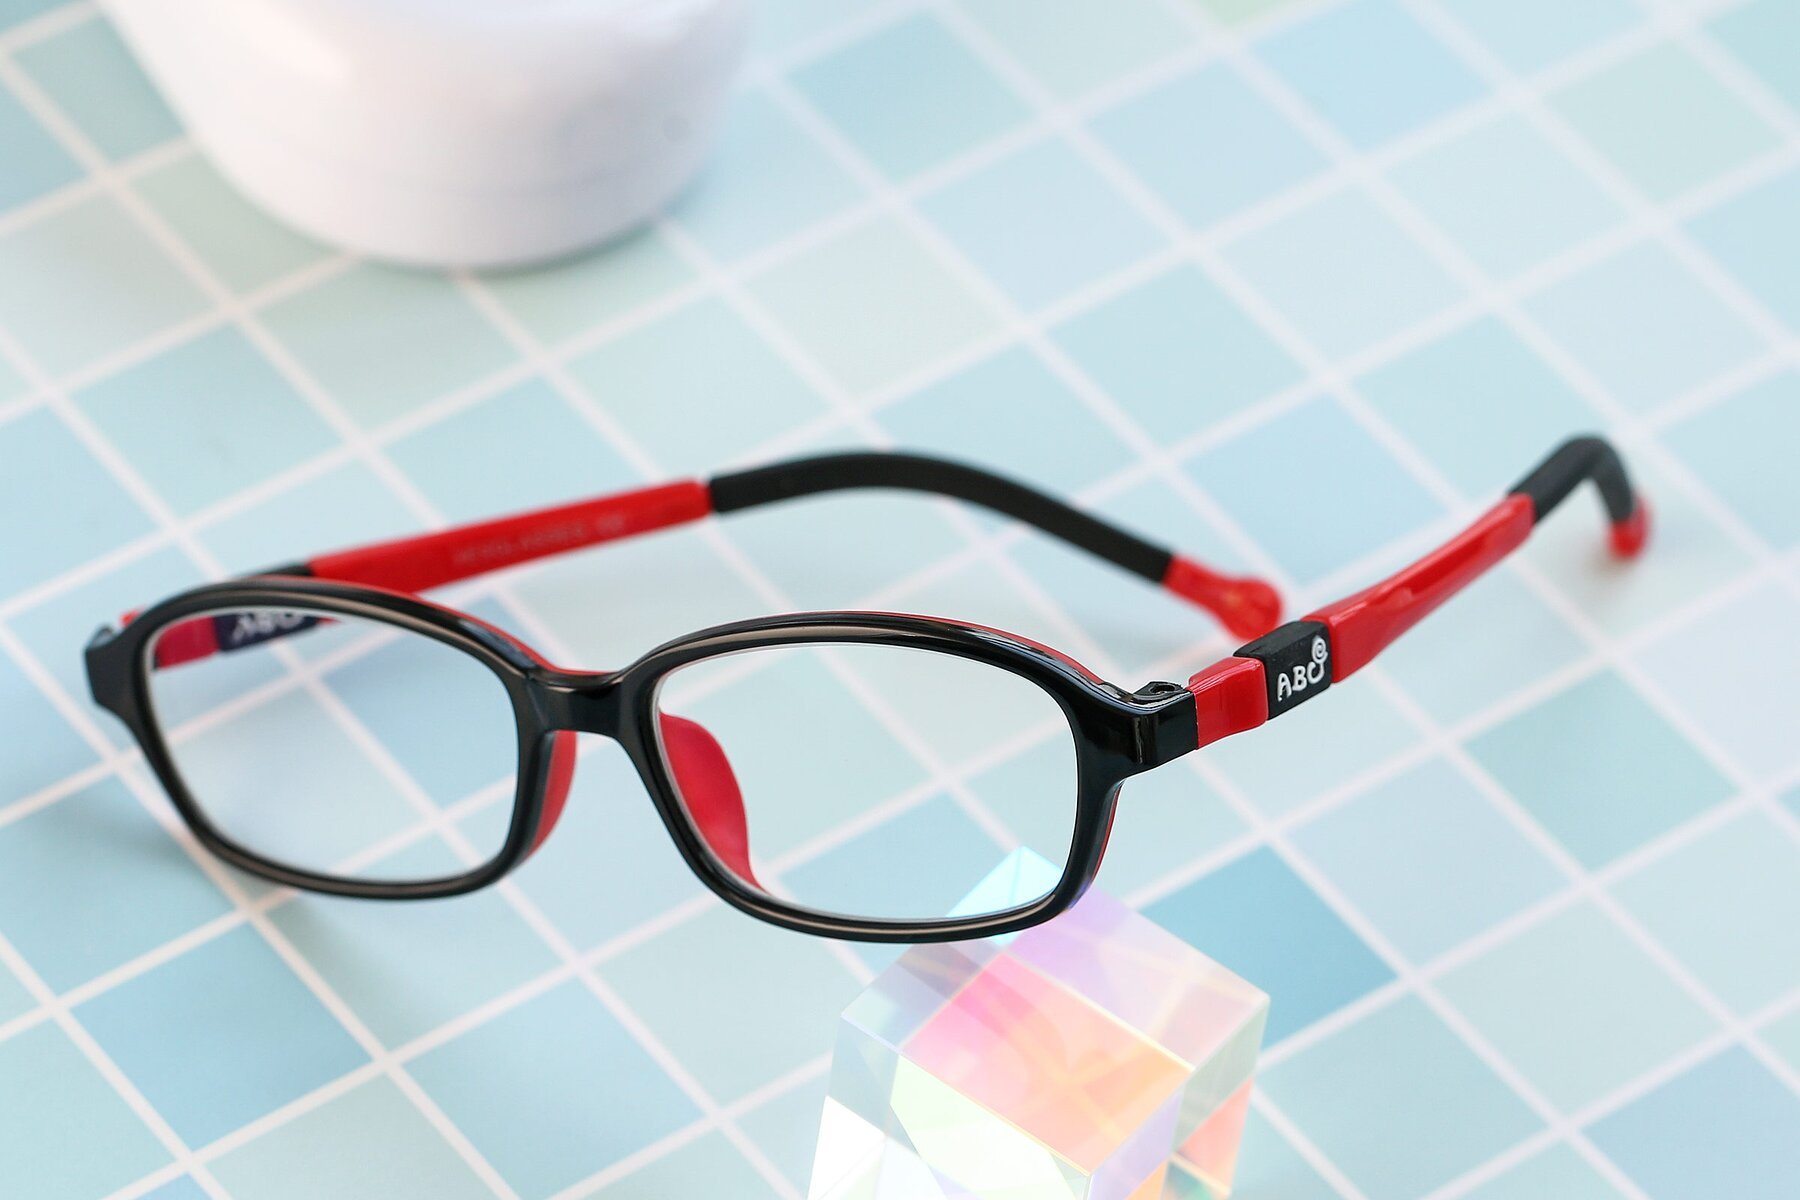 Lifestyle photography #2 of 533 in Black-Red with Clear Eyeglass Lenses